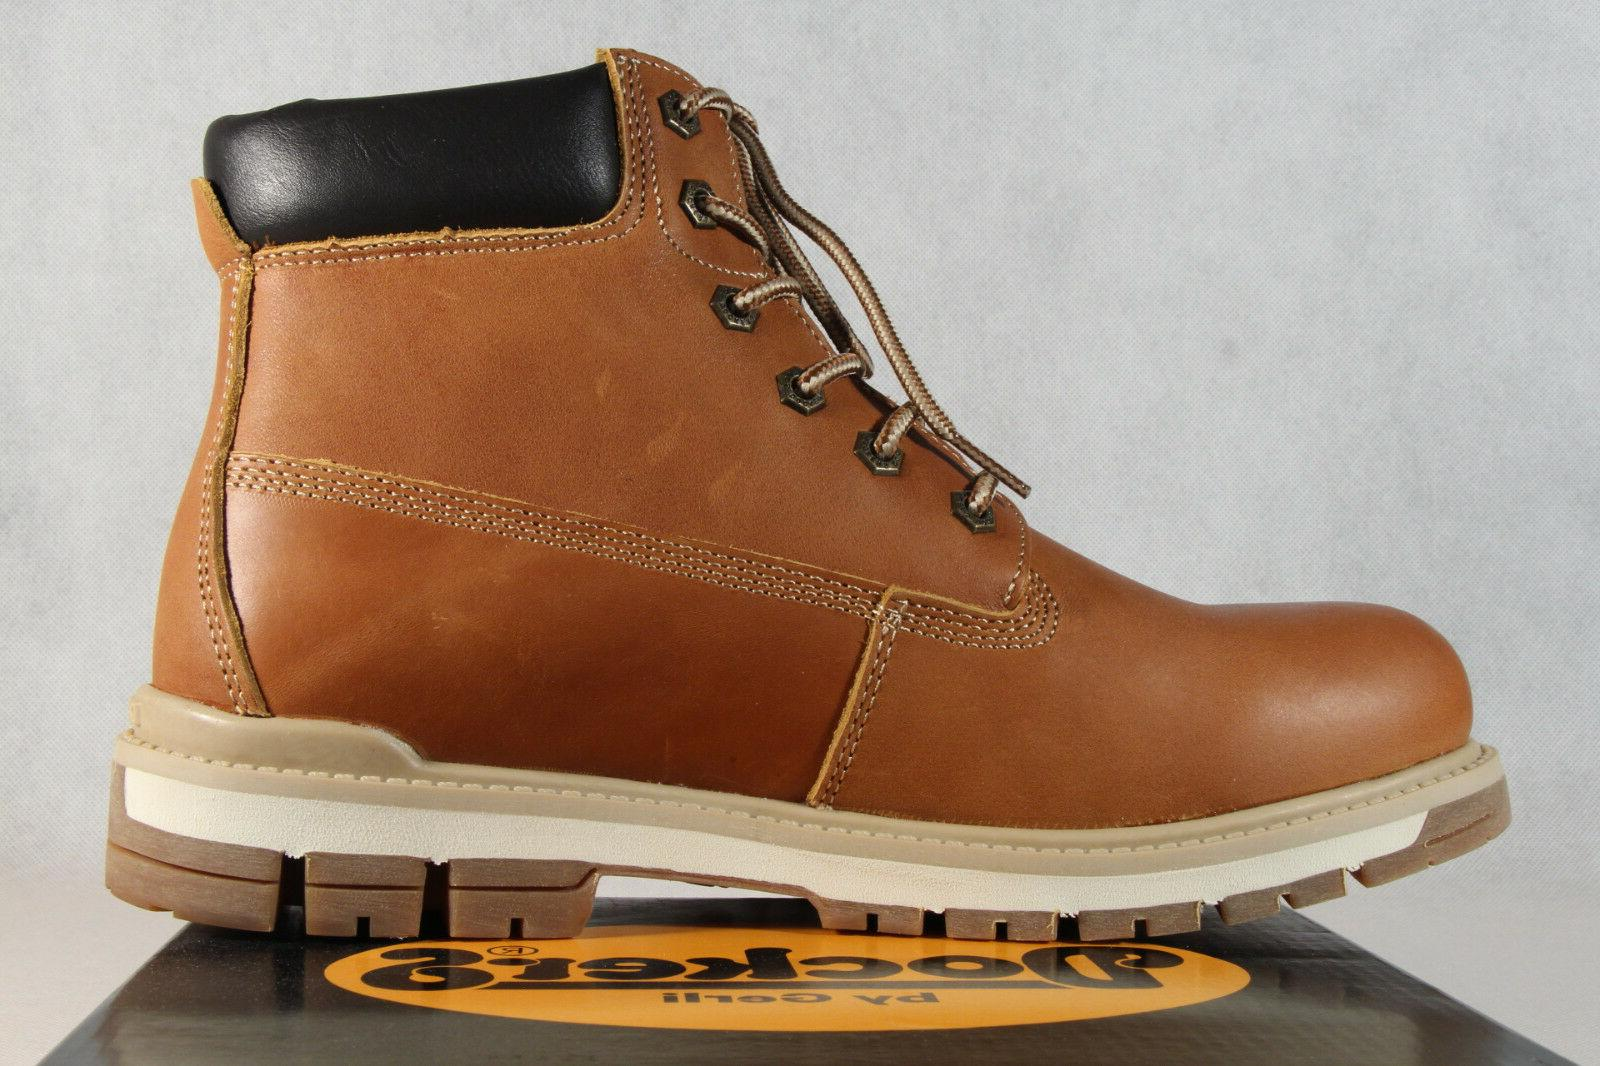 Dockers Boots Leather 43LU001 New